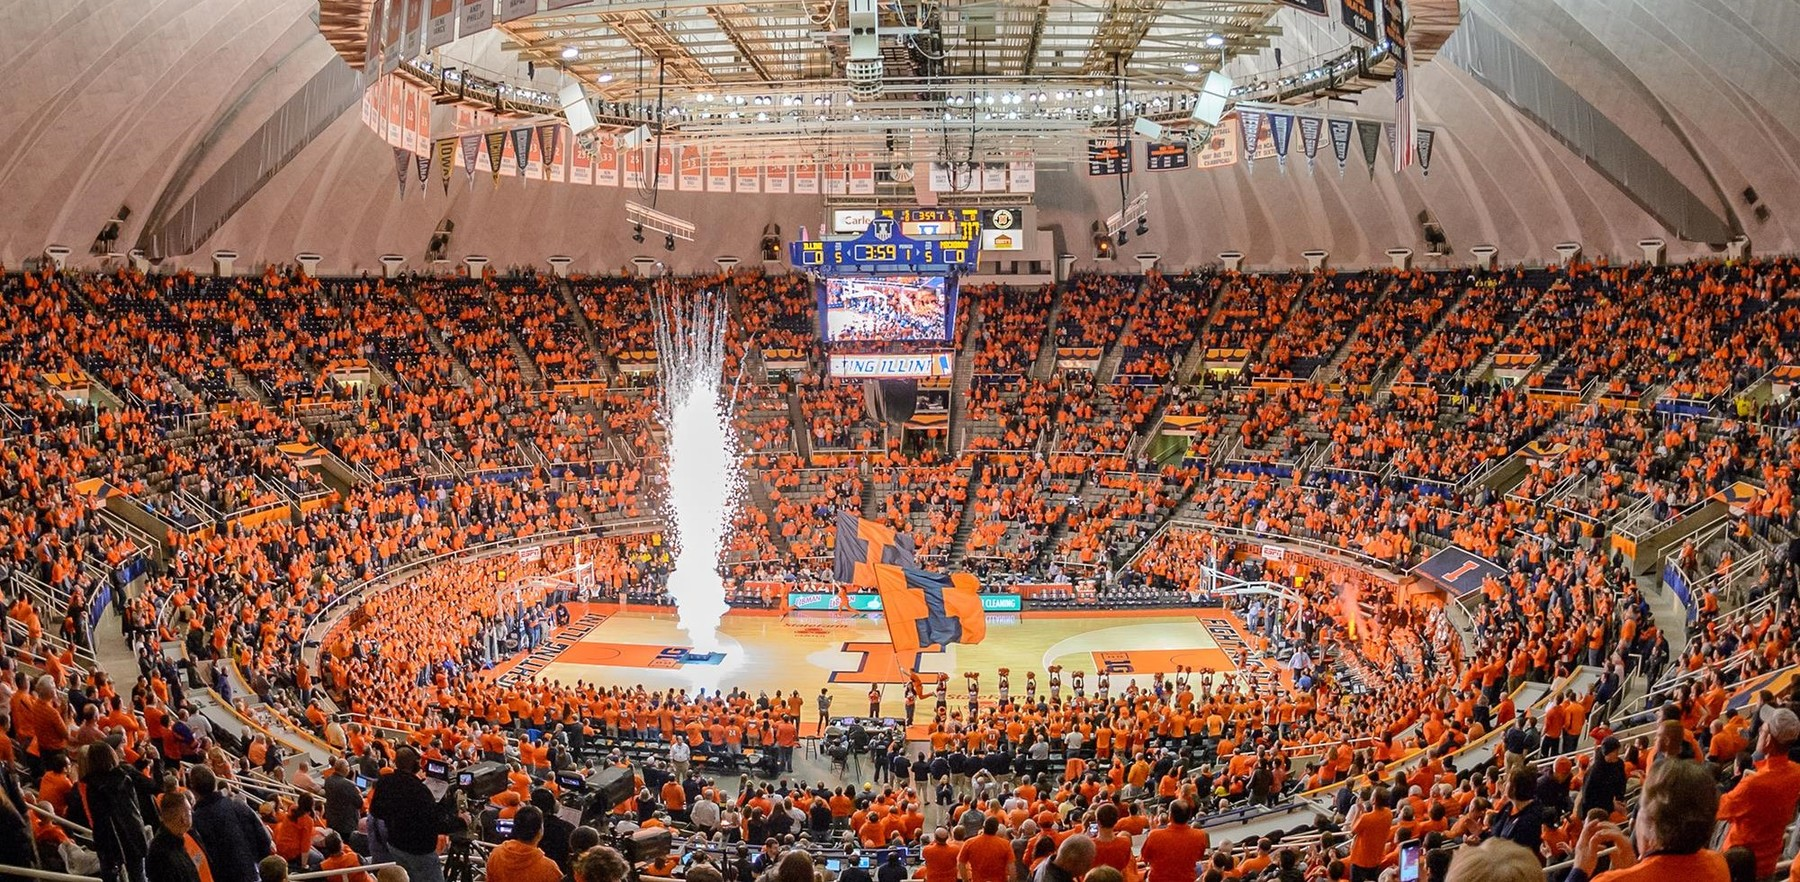 image of the interior of the State Farm Center